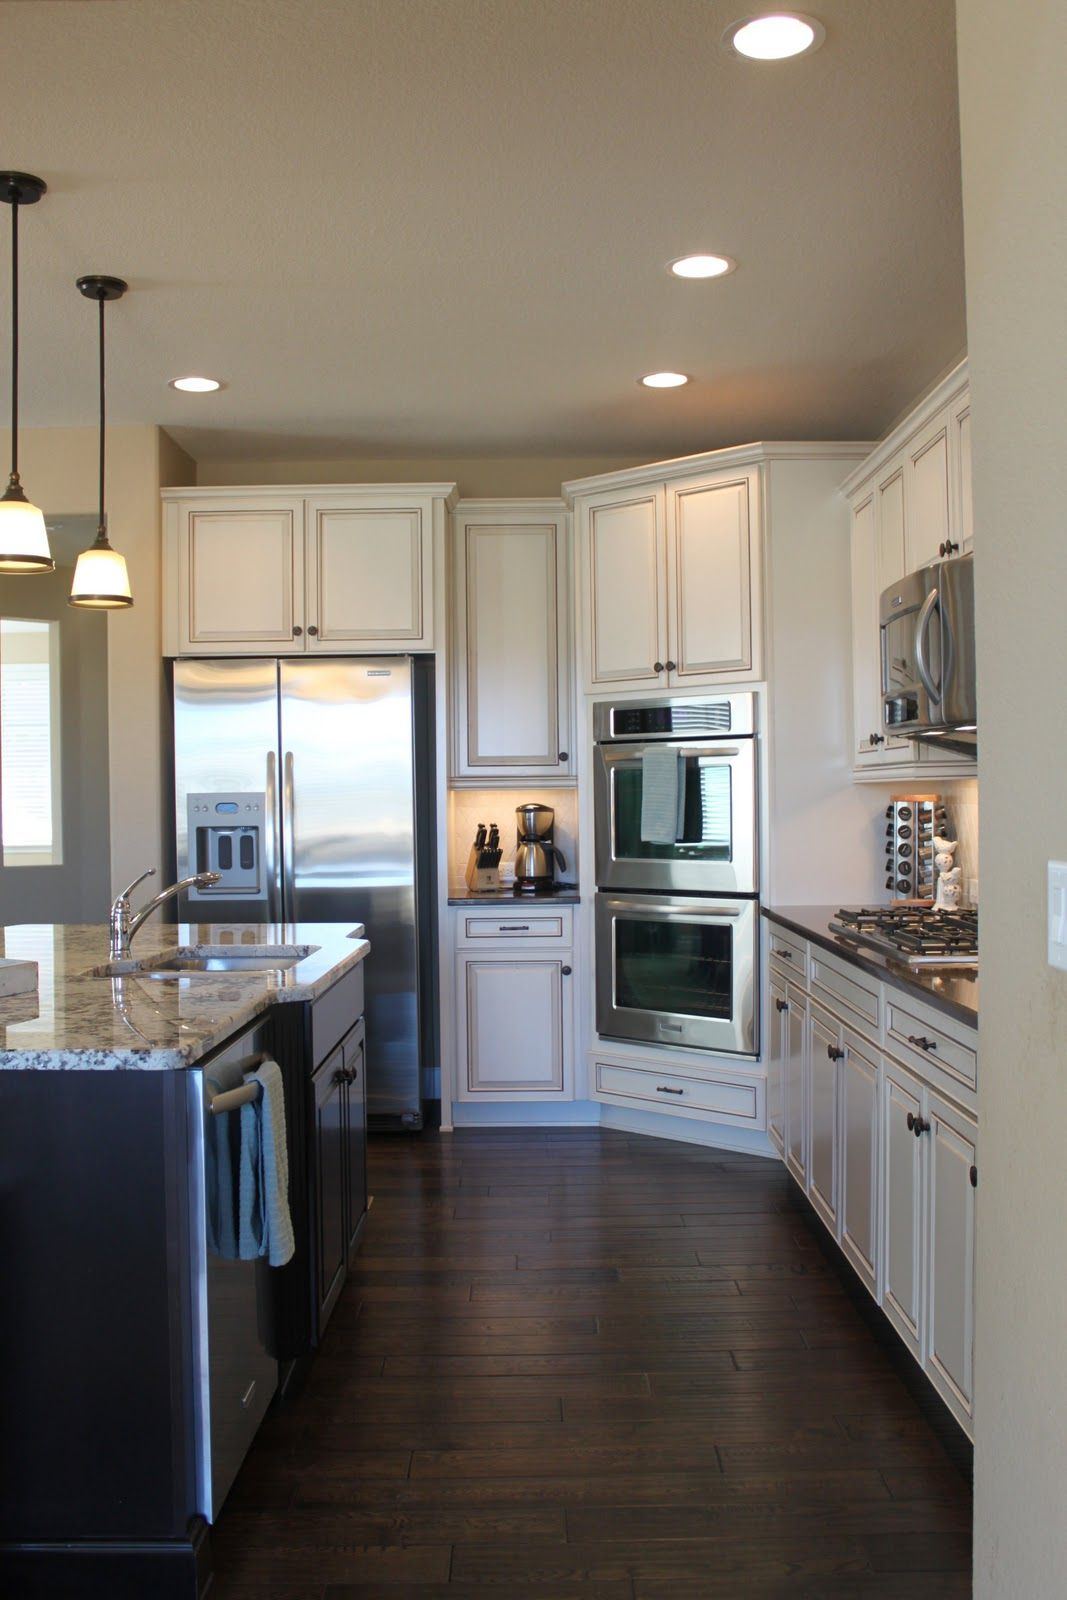 Of White Kitchens With Dark Floors White Kitchens With Dark Floors